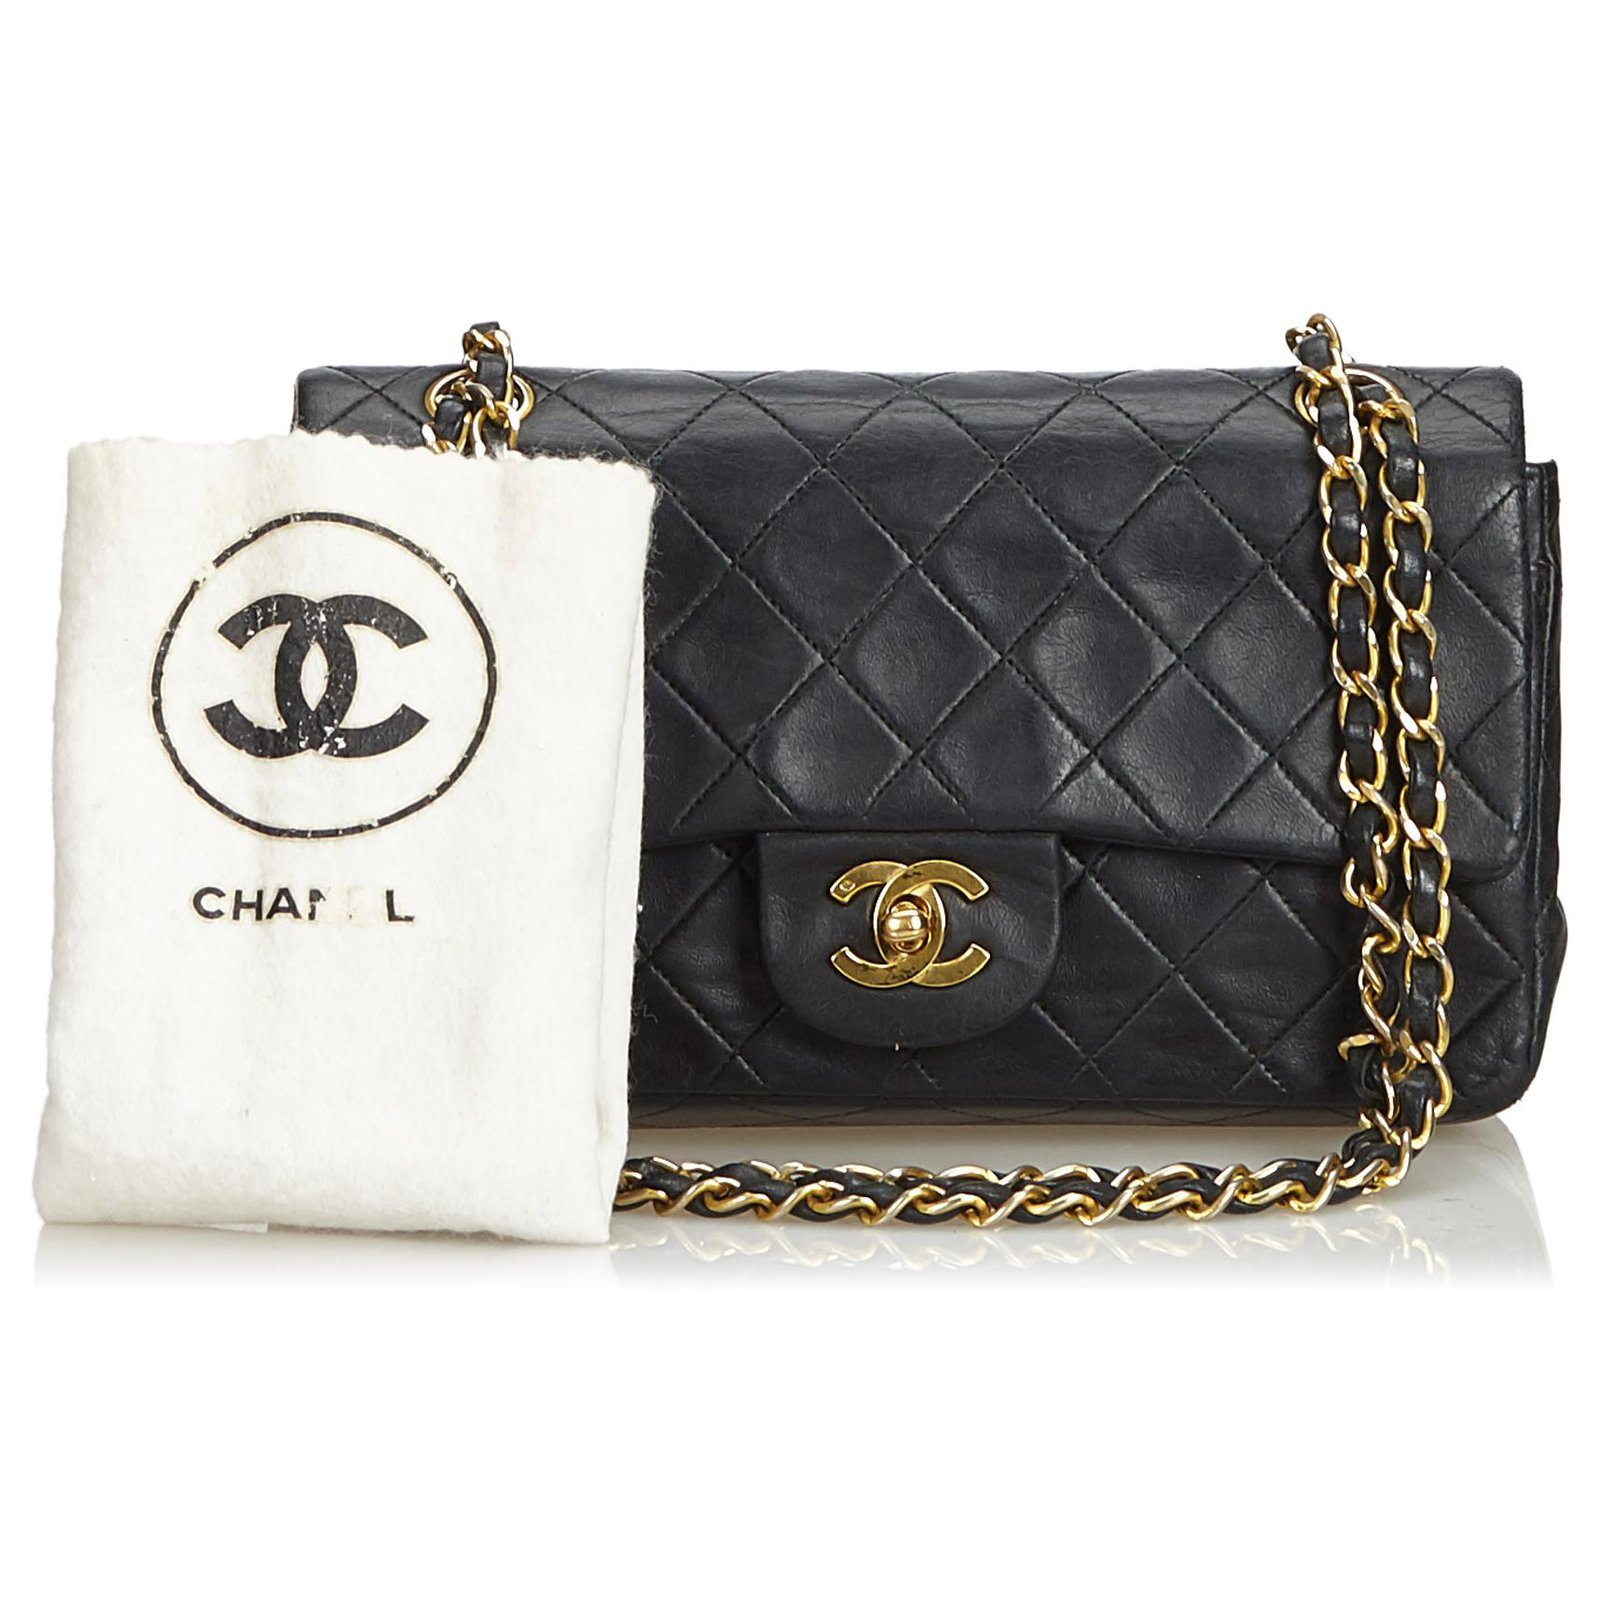 50d3b81ac2ee Chanel Chanel Black Classic Small Lambskin Leather Single Flap Bag Handbags  Leather Black ref.122868 - Joli Closet